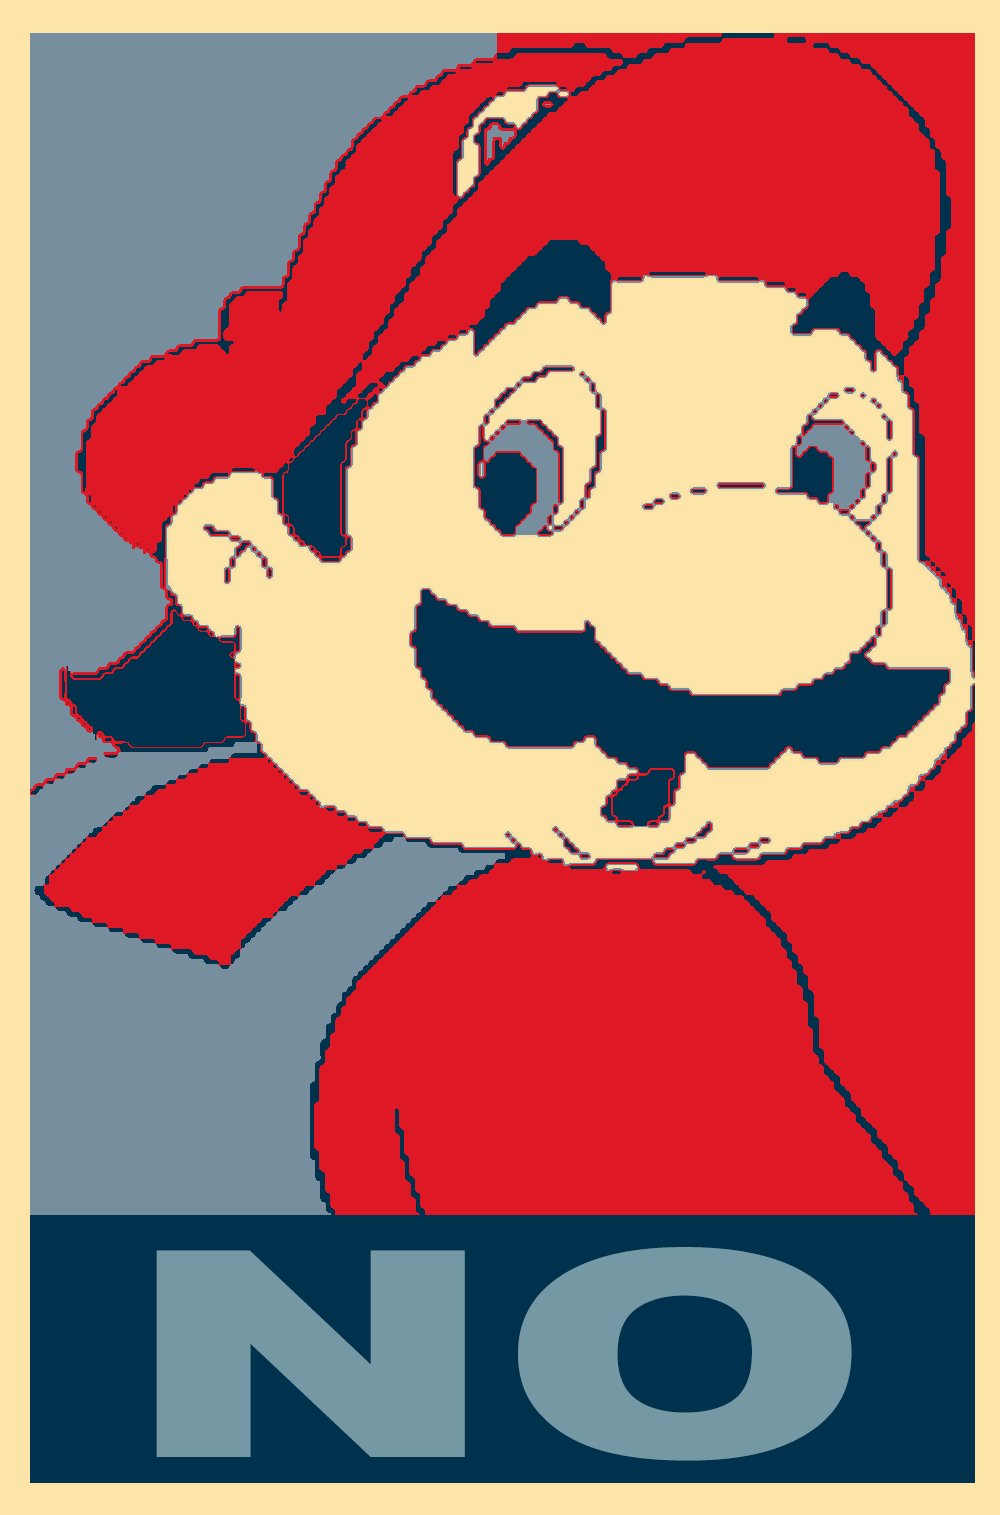 mario hotel hope obama meme posters random else person evolve super nose worse anyone update think getting each chapter nice